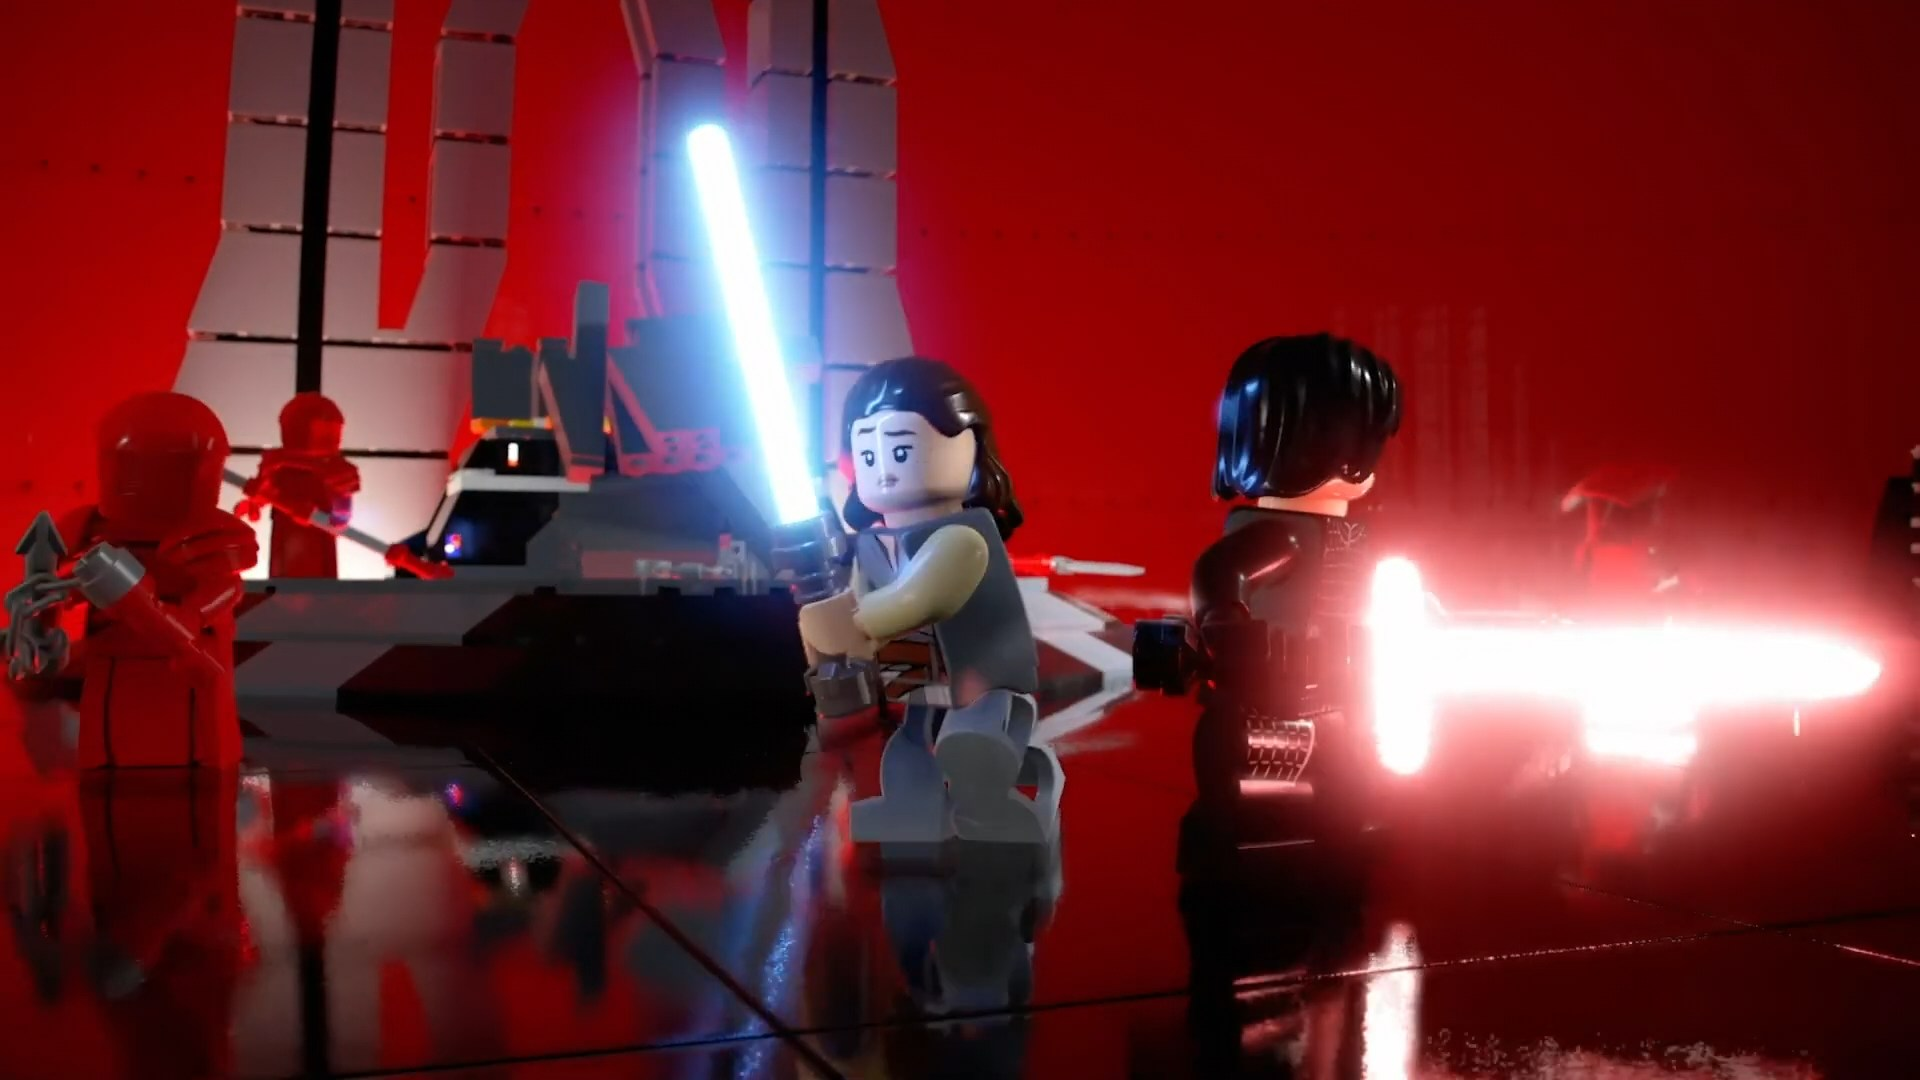 lego star wars, Die Skywalker Saga, Lego Star Wars: Die Skywalker Saga